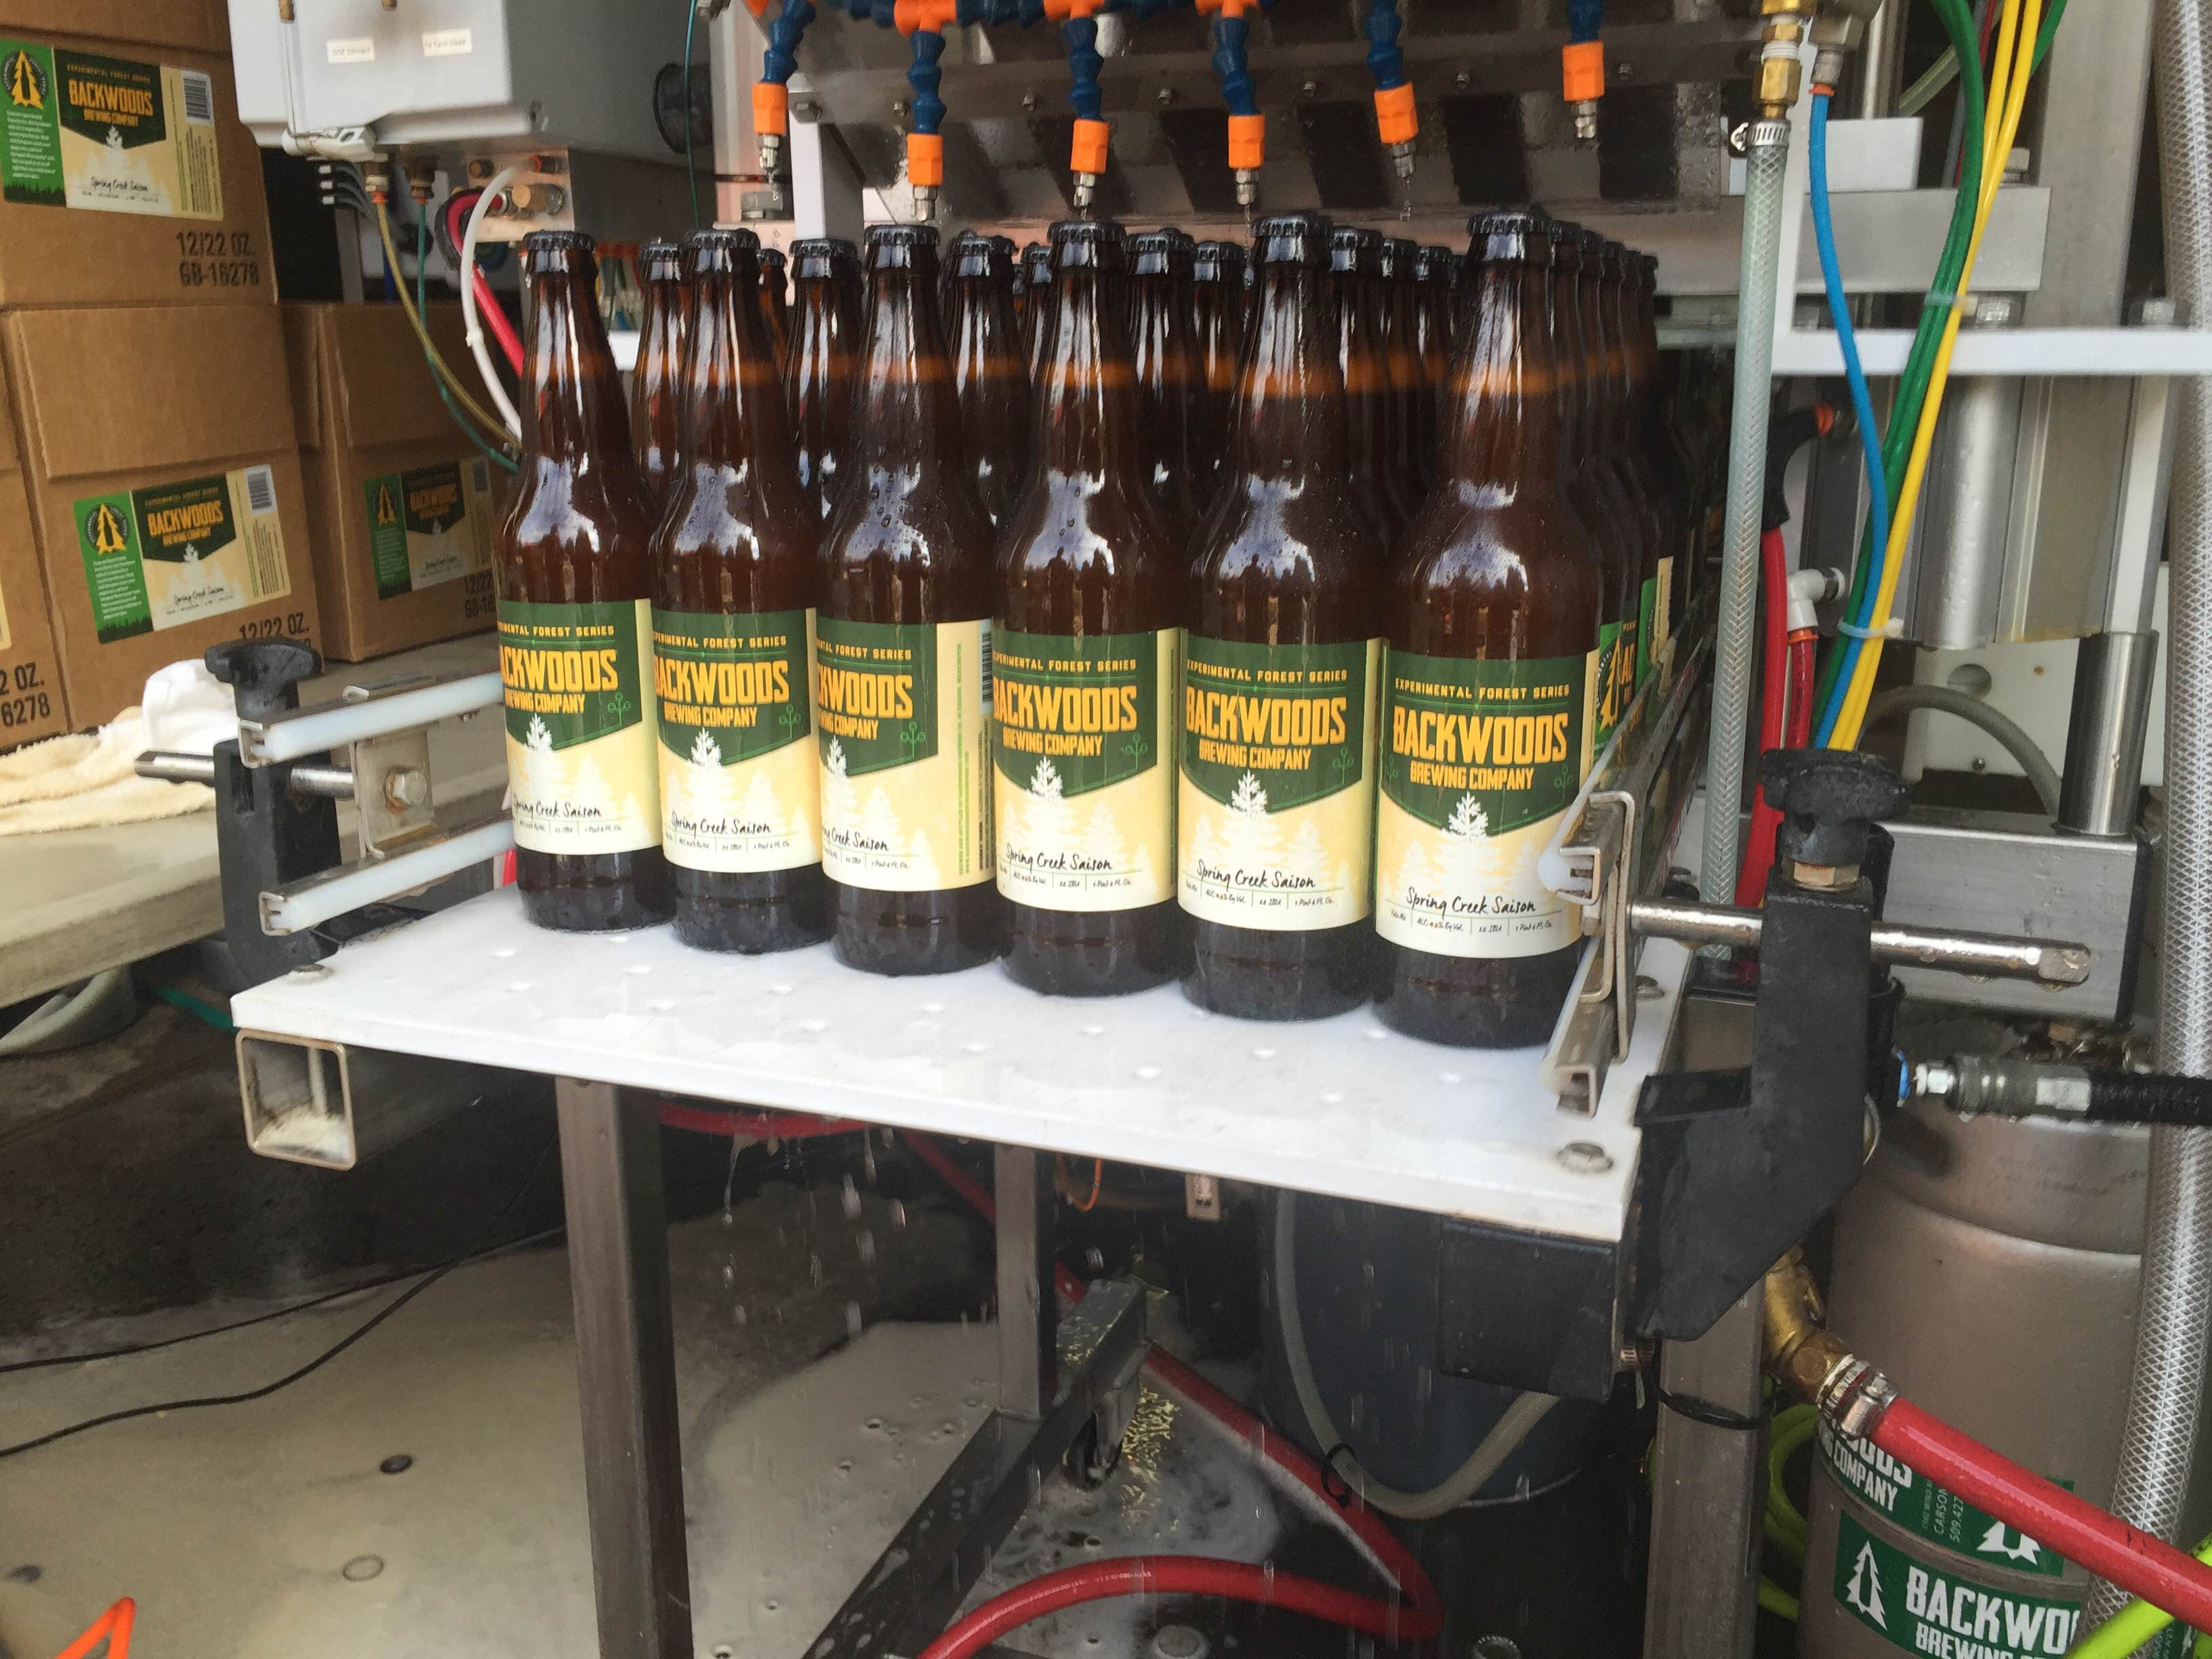 Bottling Spring Creek Saison (image courtesy of Backwoods Brewing)